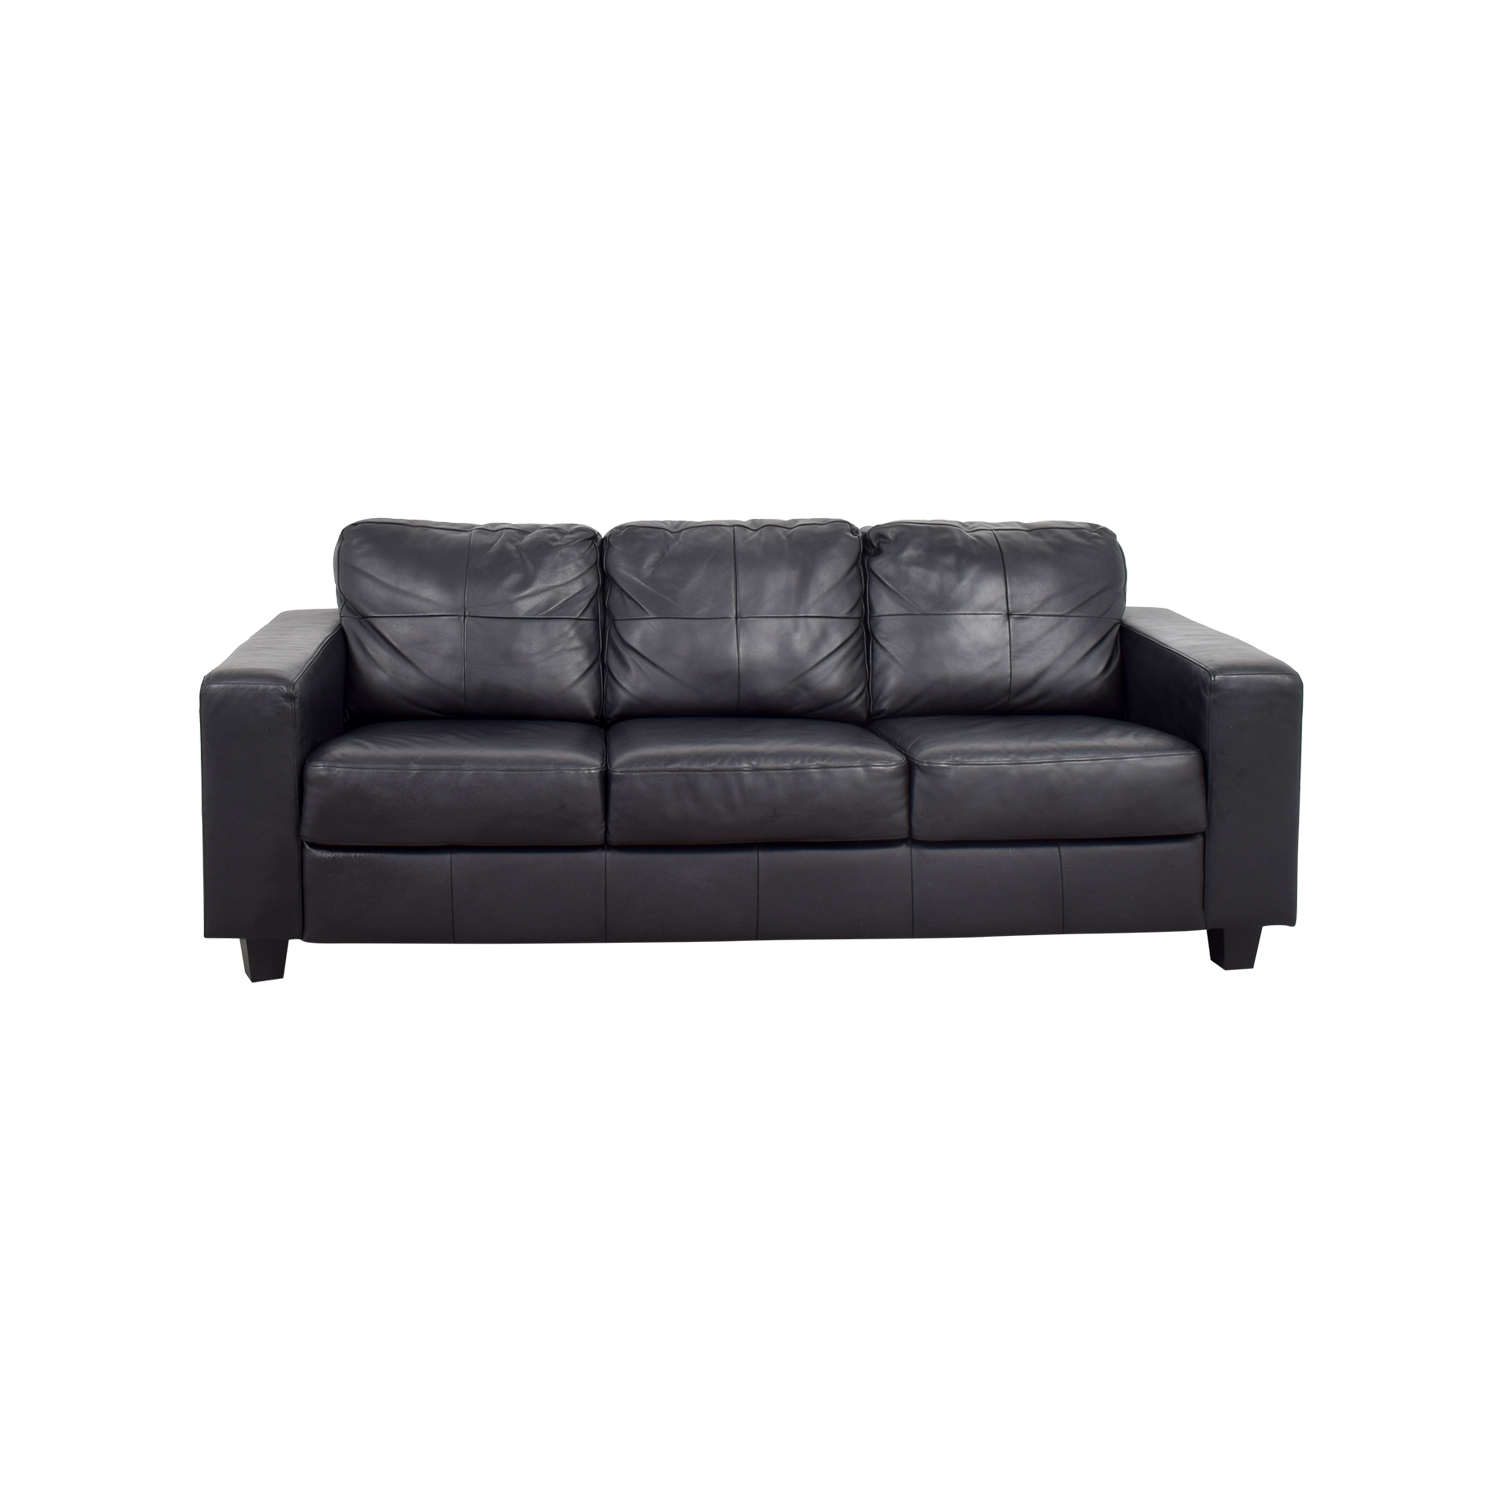 leather sofas ikea cushion ideas for black sofa 44 off skogaby